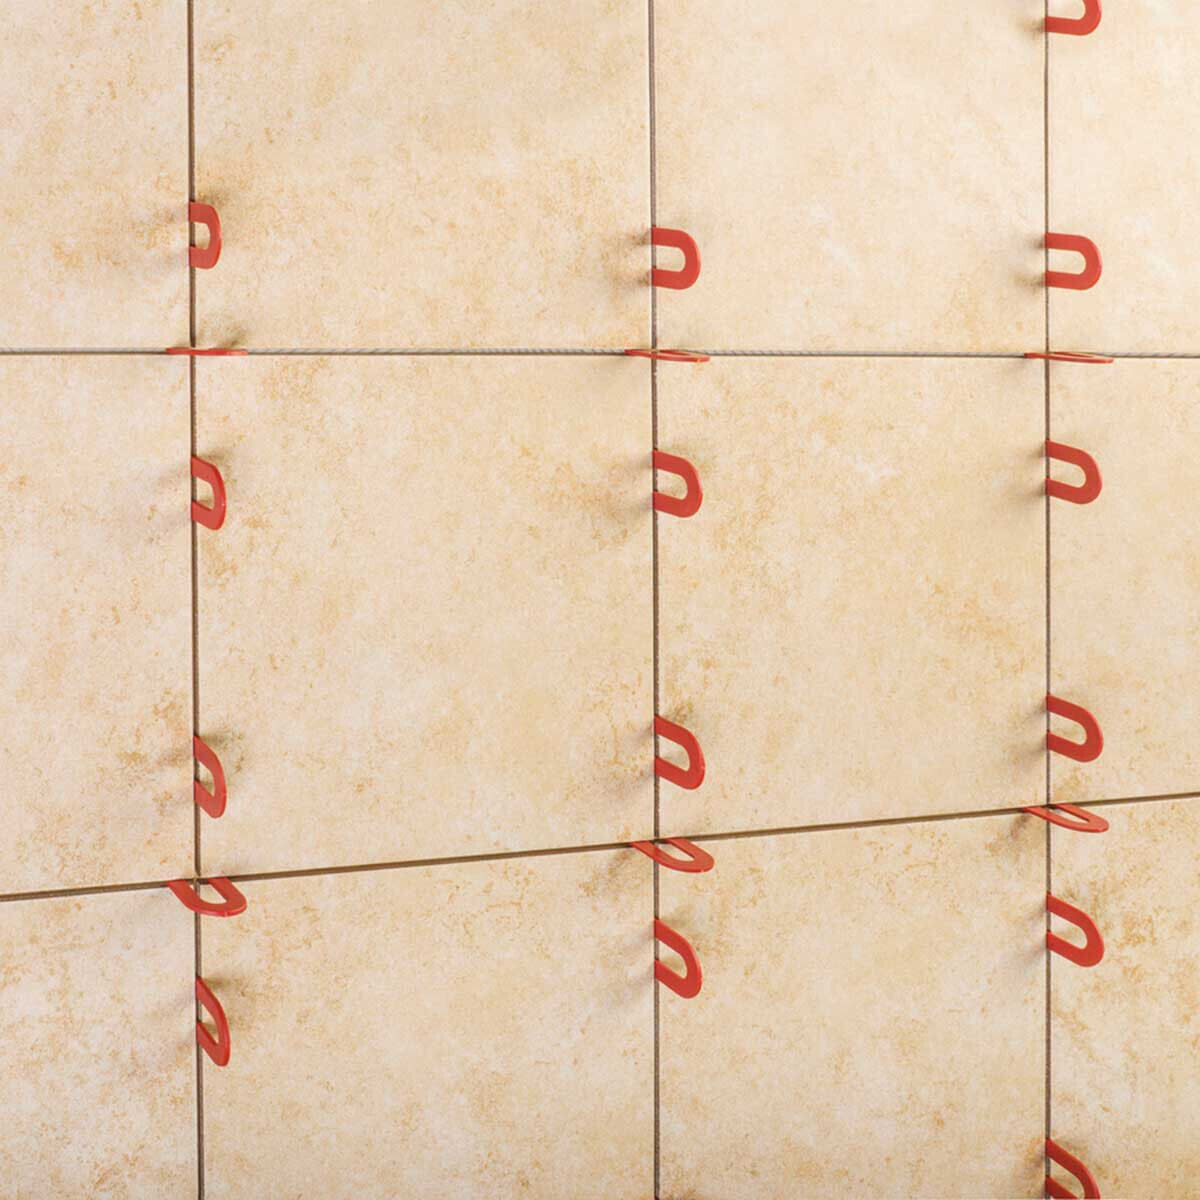 Leveling Shower Tile with Plastic Shims